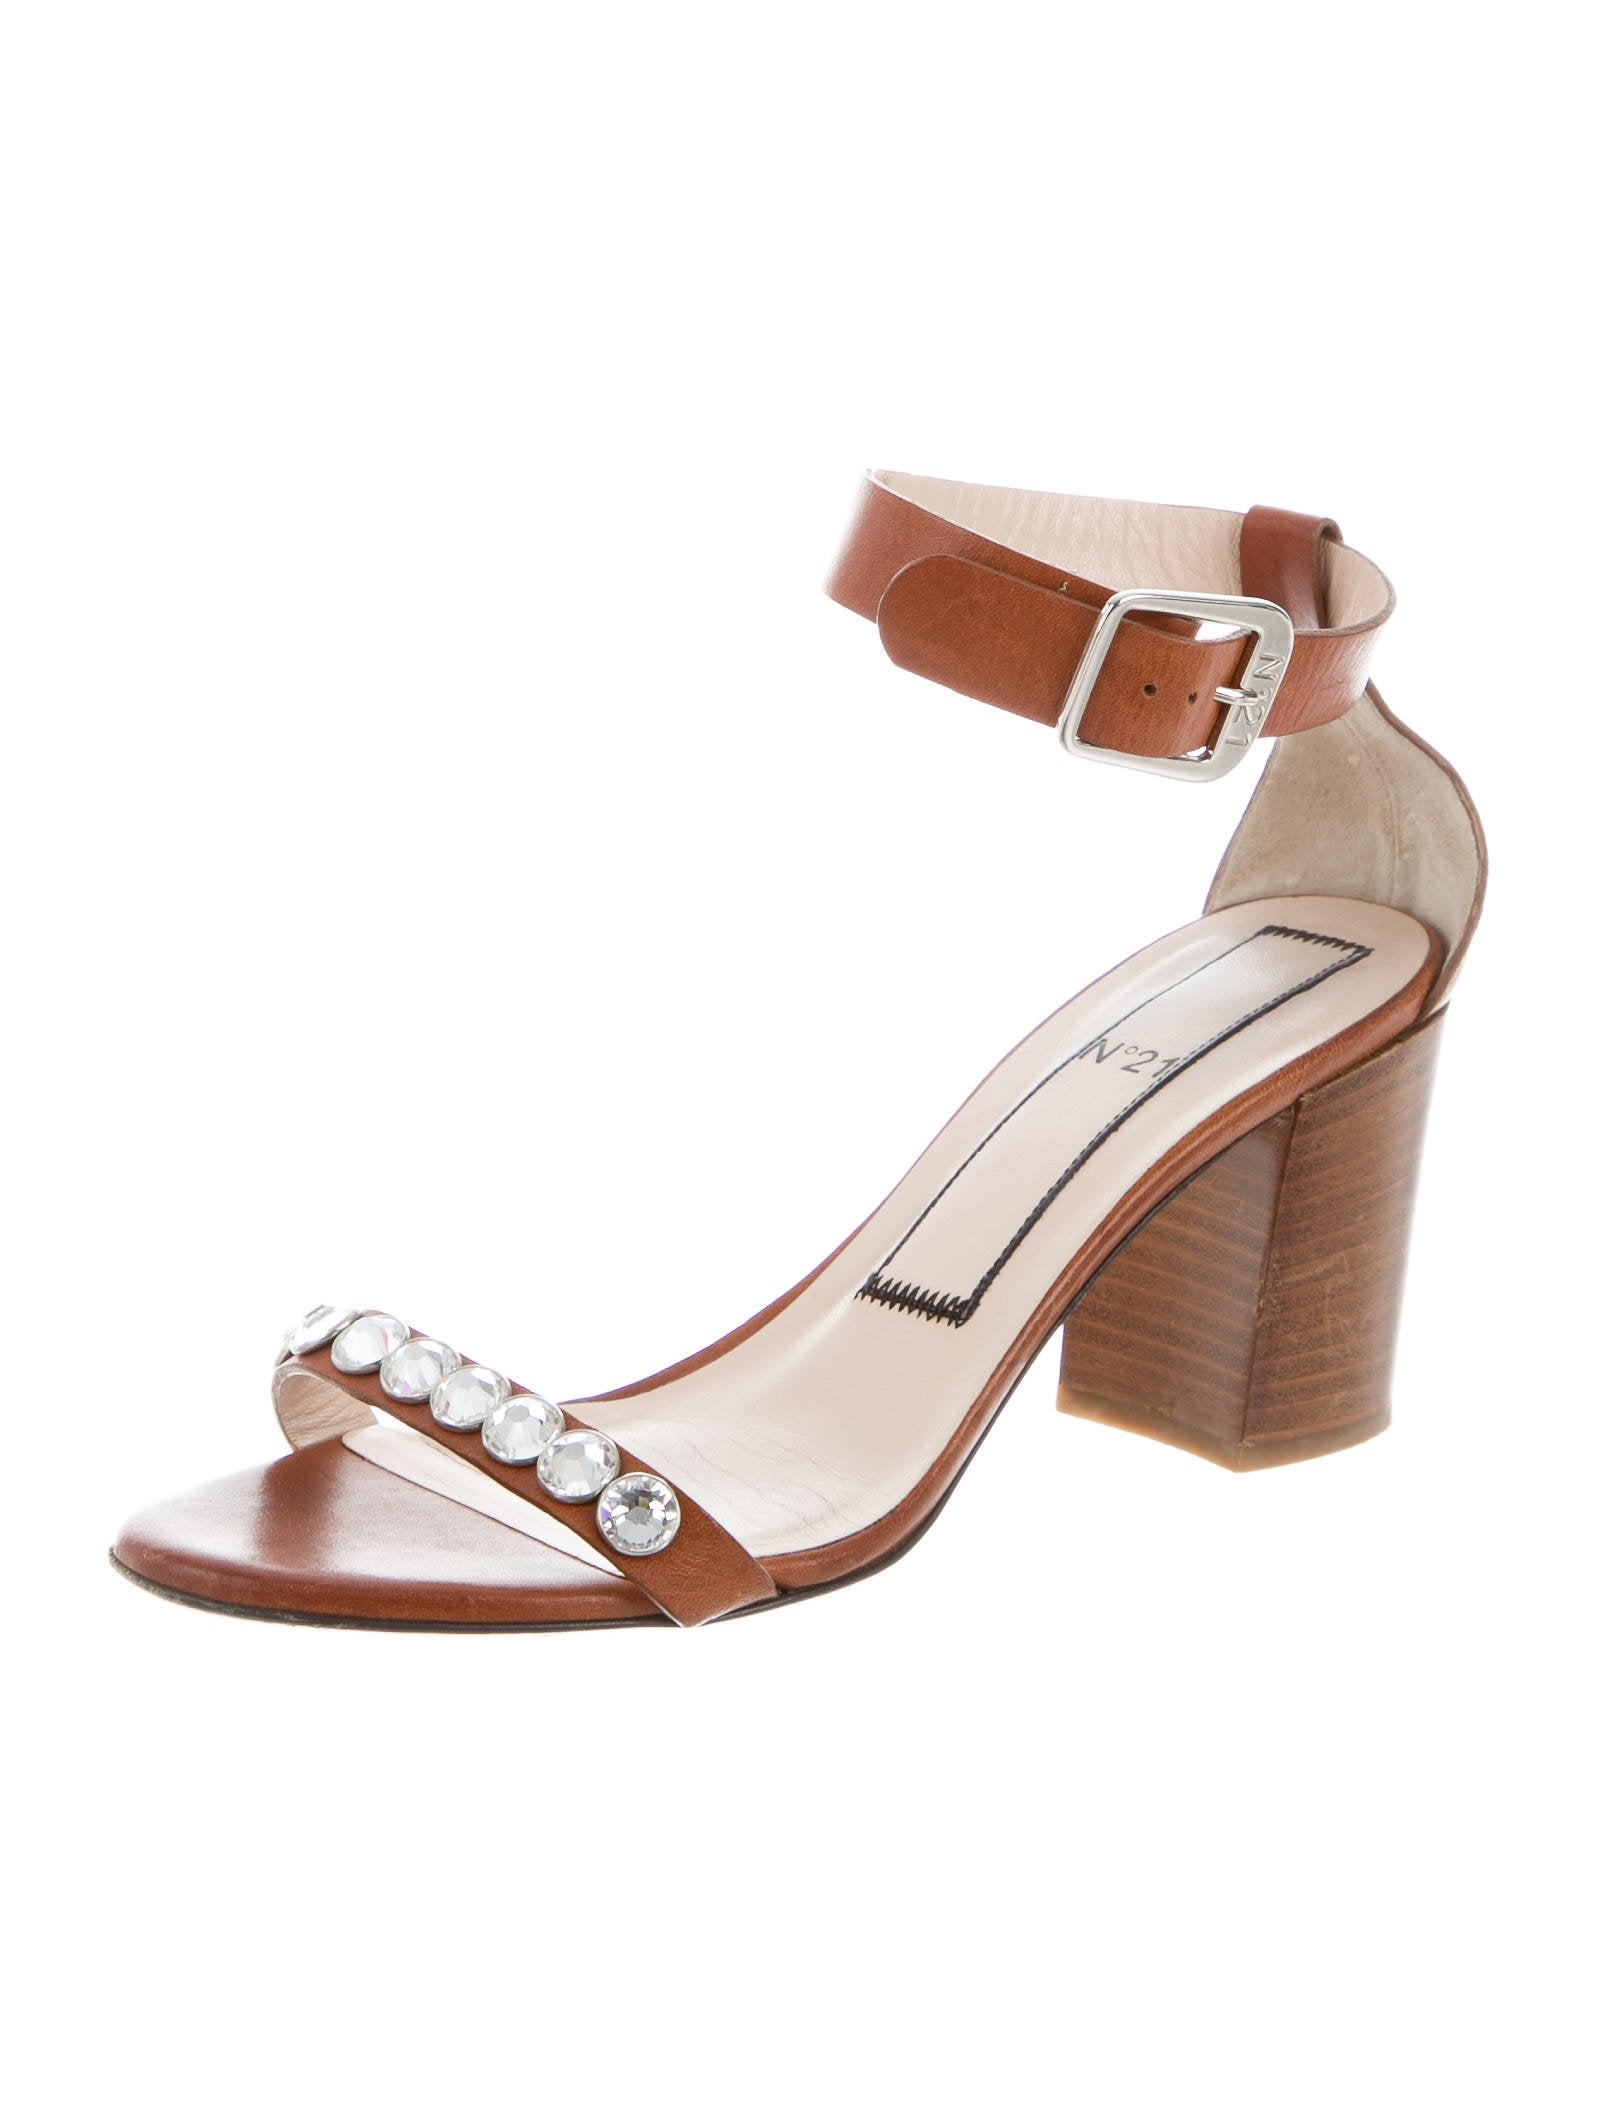 No. 21 Embellished Ankle Strap Sandals visit new online free shipping big discount discount footlocker pictures sale for sale A6UcI